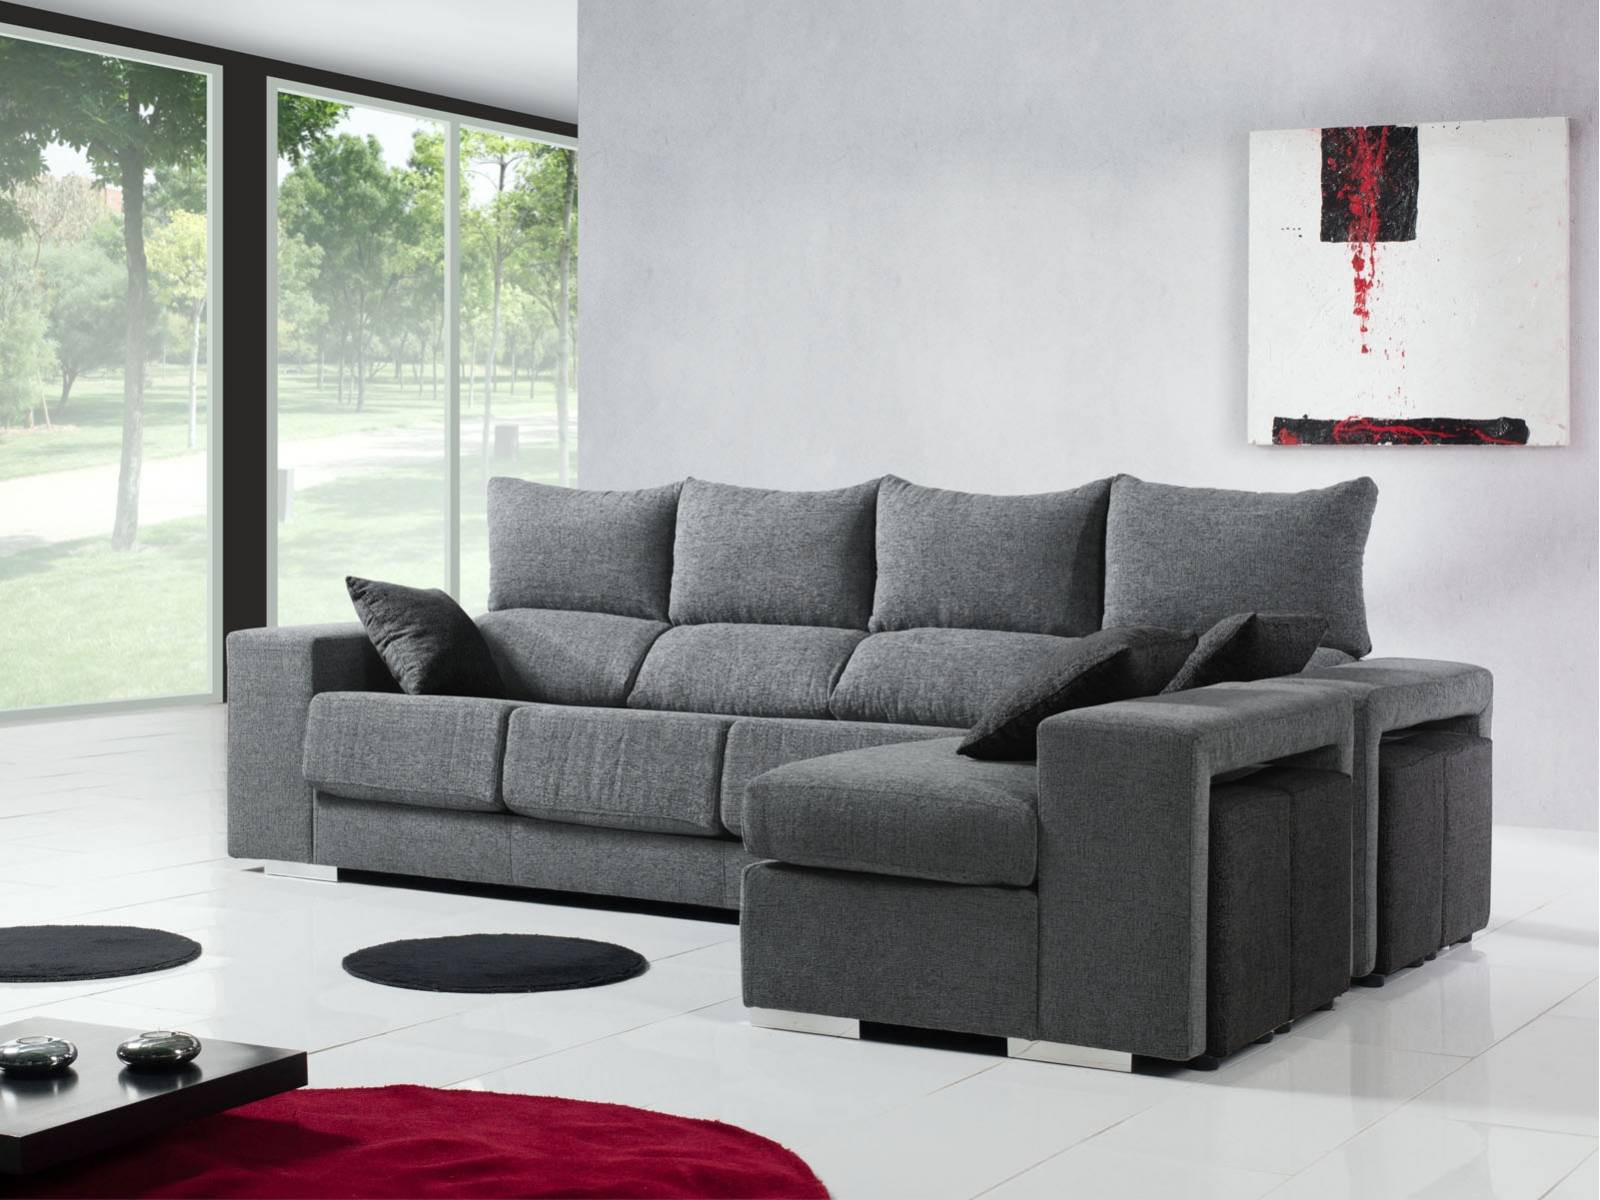 Oferta sofa Chaise Longue Lujo sofá Con Chaise Longue Reversible Y 4 Puff Of 41  Encantador Oferta sofa Chaise Longue